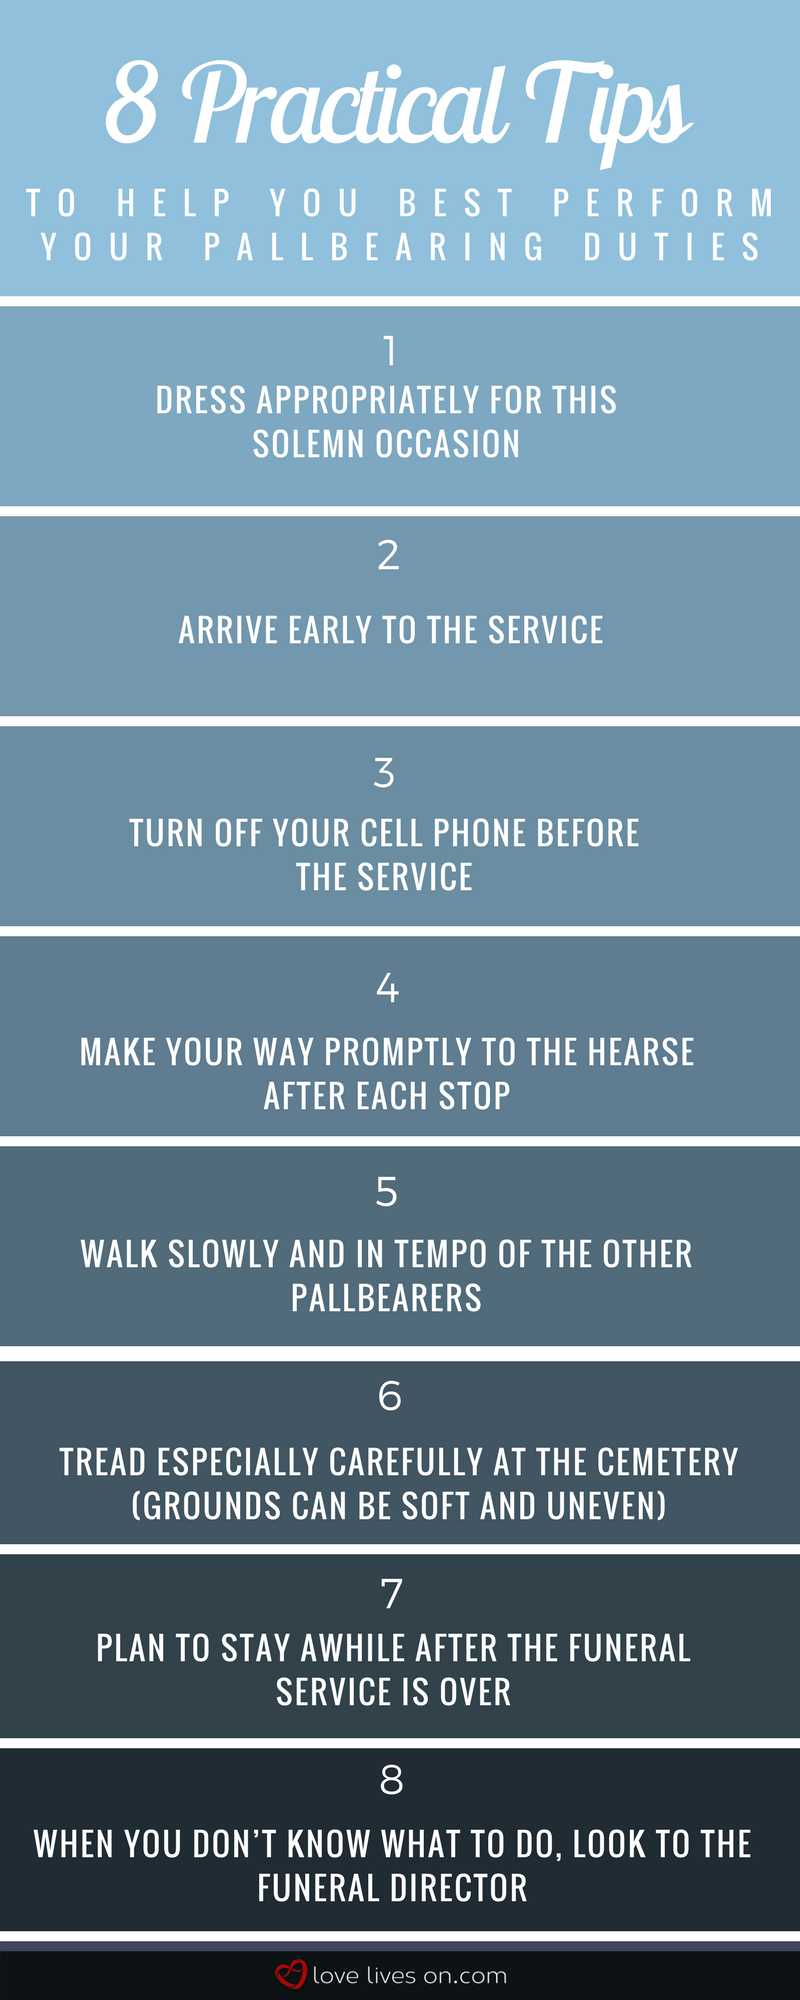 Infographic: 8 Helpful Tips for Pallbearers